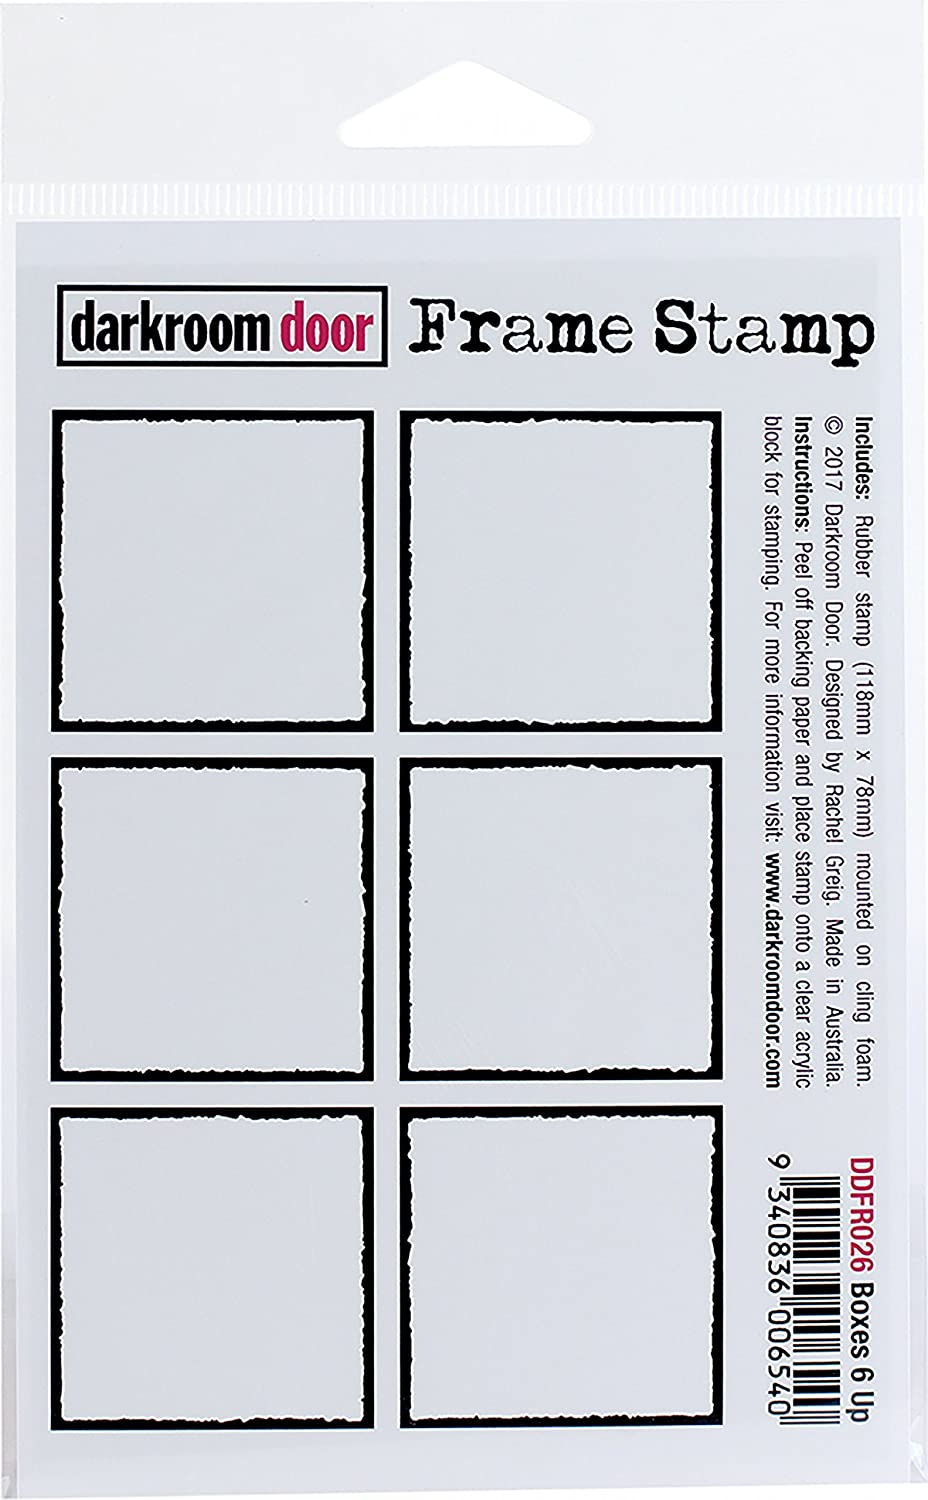 Darkroom Door Boxes 6 up Cling Stamp 4.5'X3' 3 Birds DDFR026